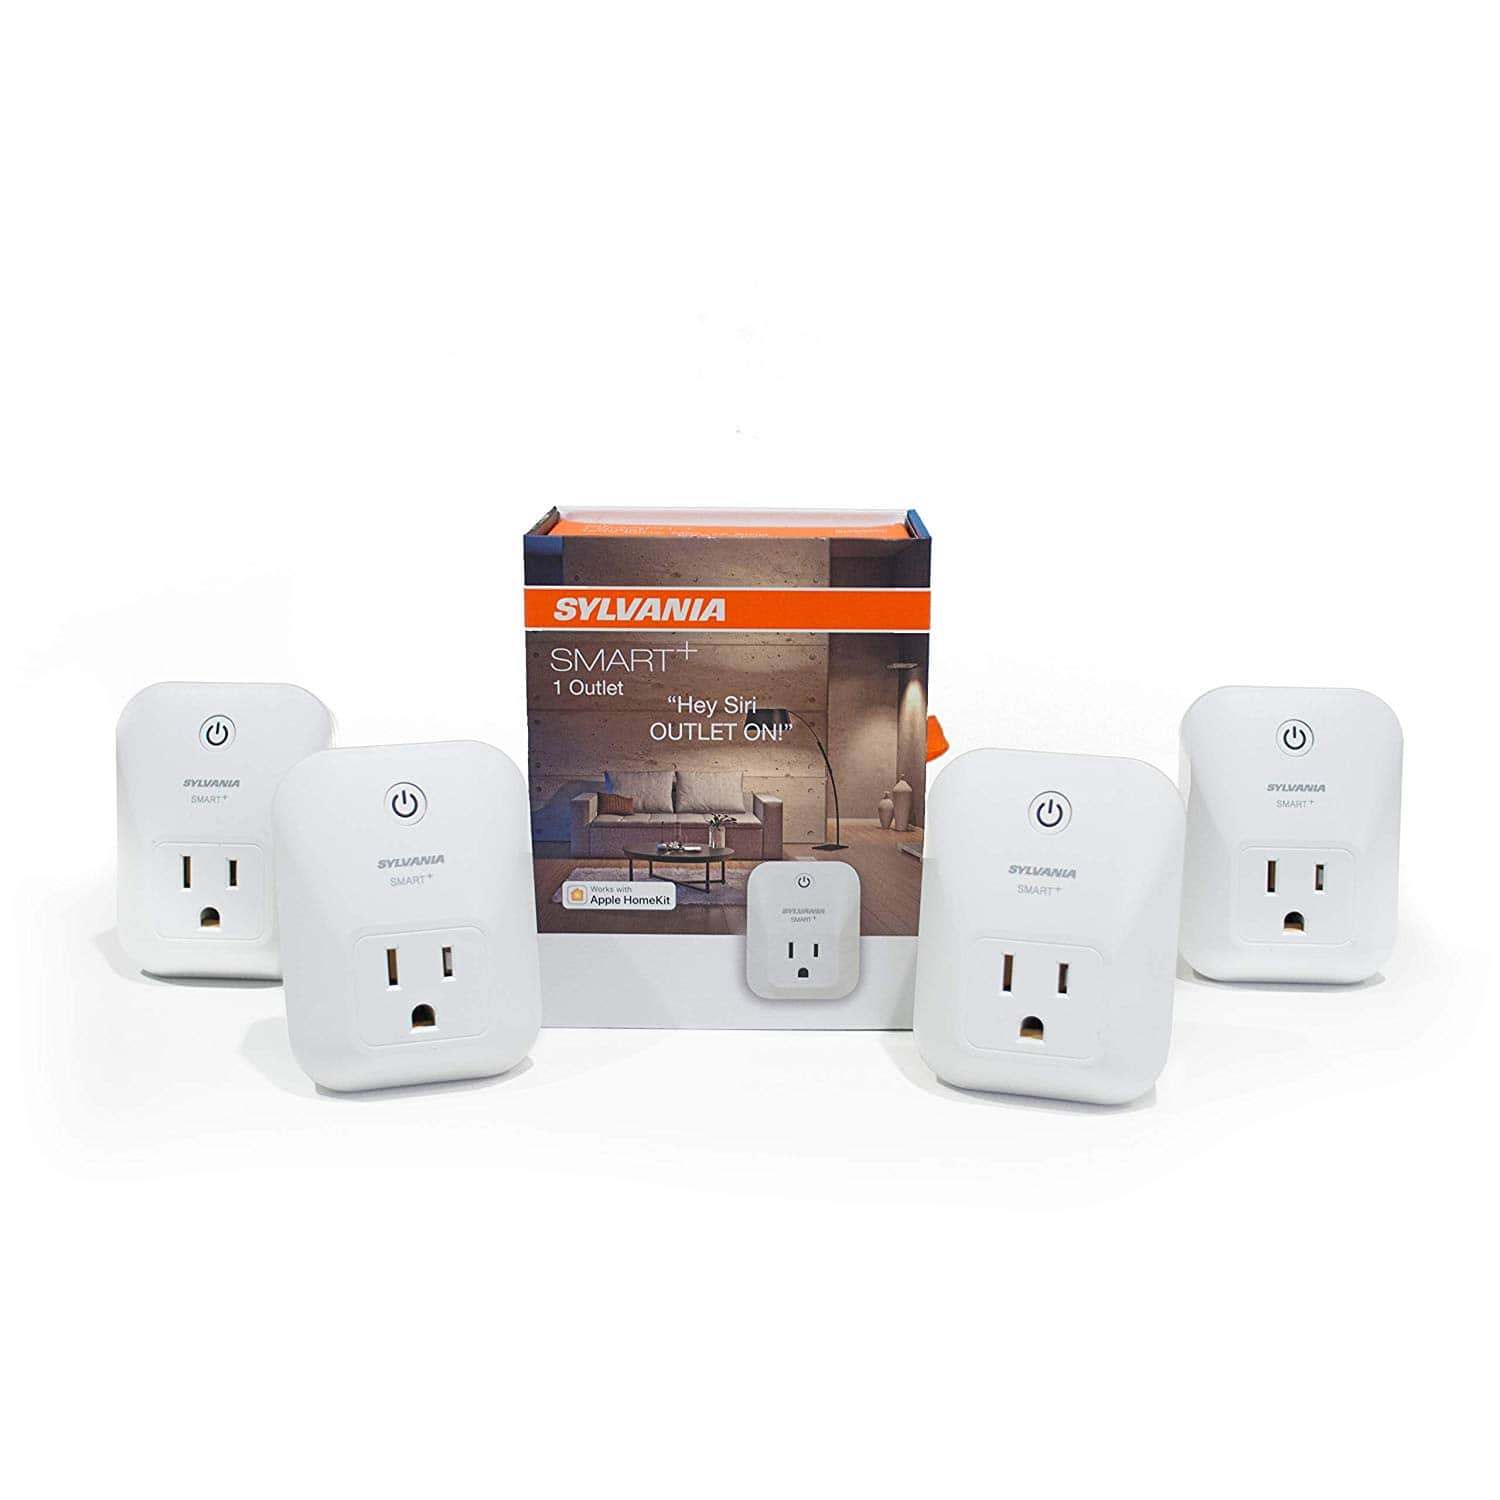 SYLVANIA General Lighting 70741 Sylvania 74582 + Bluetooth Smart Plug, Works with Apple Homekit and Siri Voice Control, No Hub Required for Set up, 4 Pack $42.95